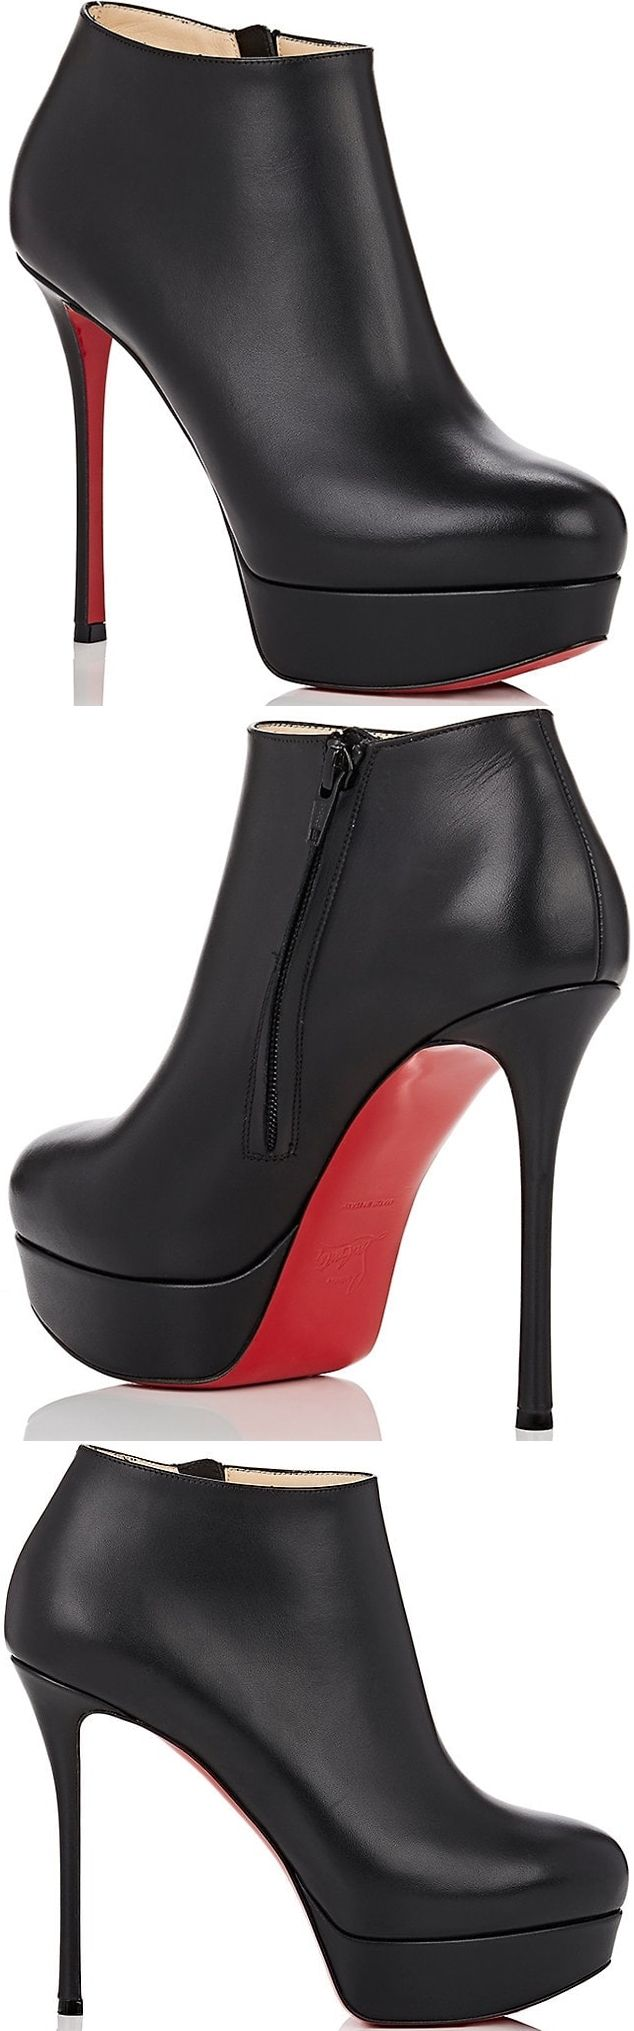 Christian Louboutin's black smooth calfskin Dirdibootie ankle booties are designed with the label's signature Fetish stiletto heel. Made in Italy, this edgy-yet-refined pair features a supportive platform for comfort and wearability.